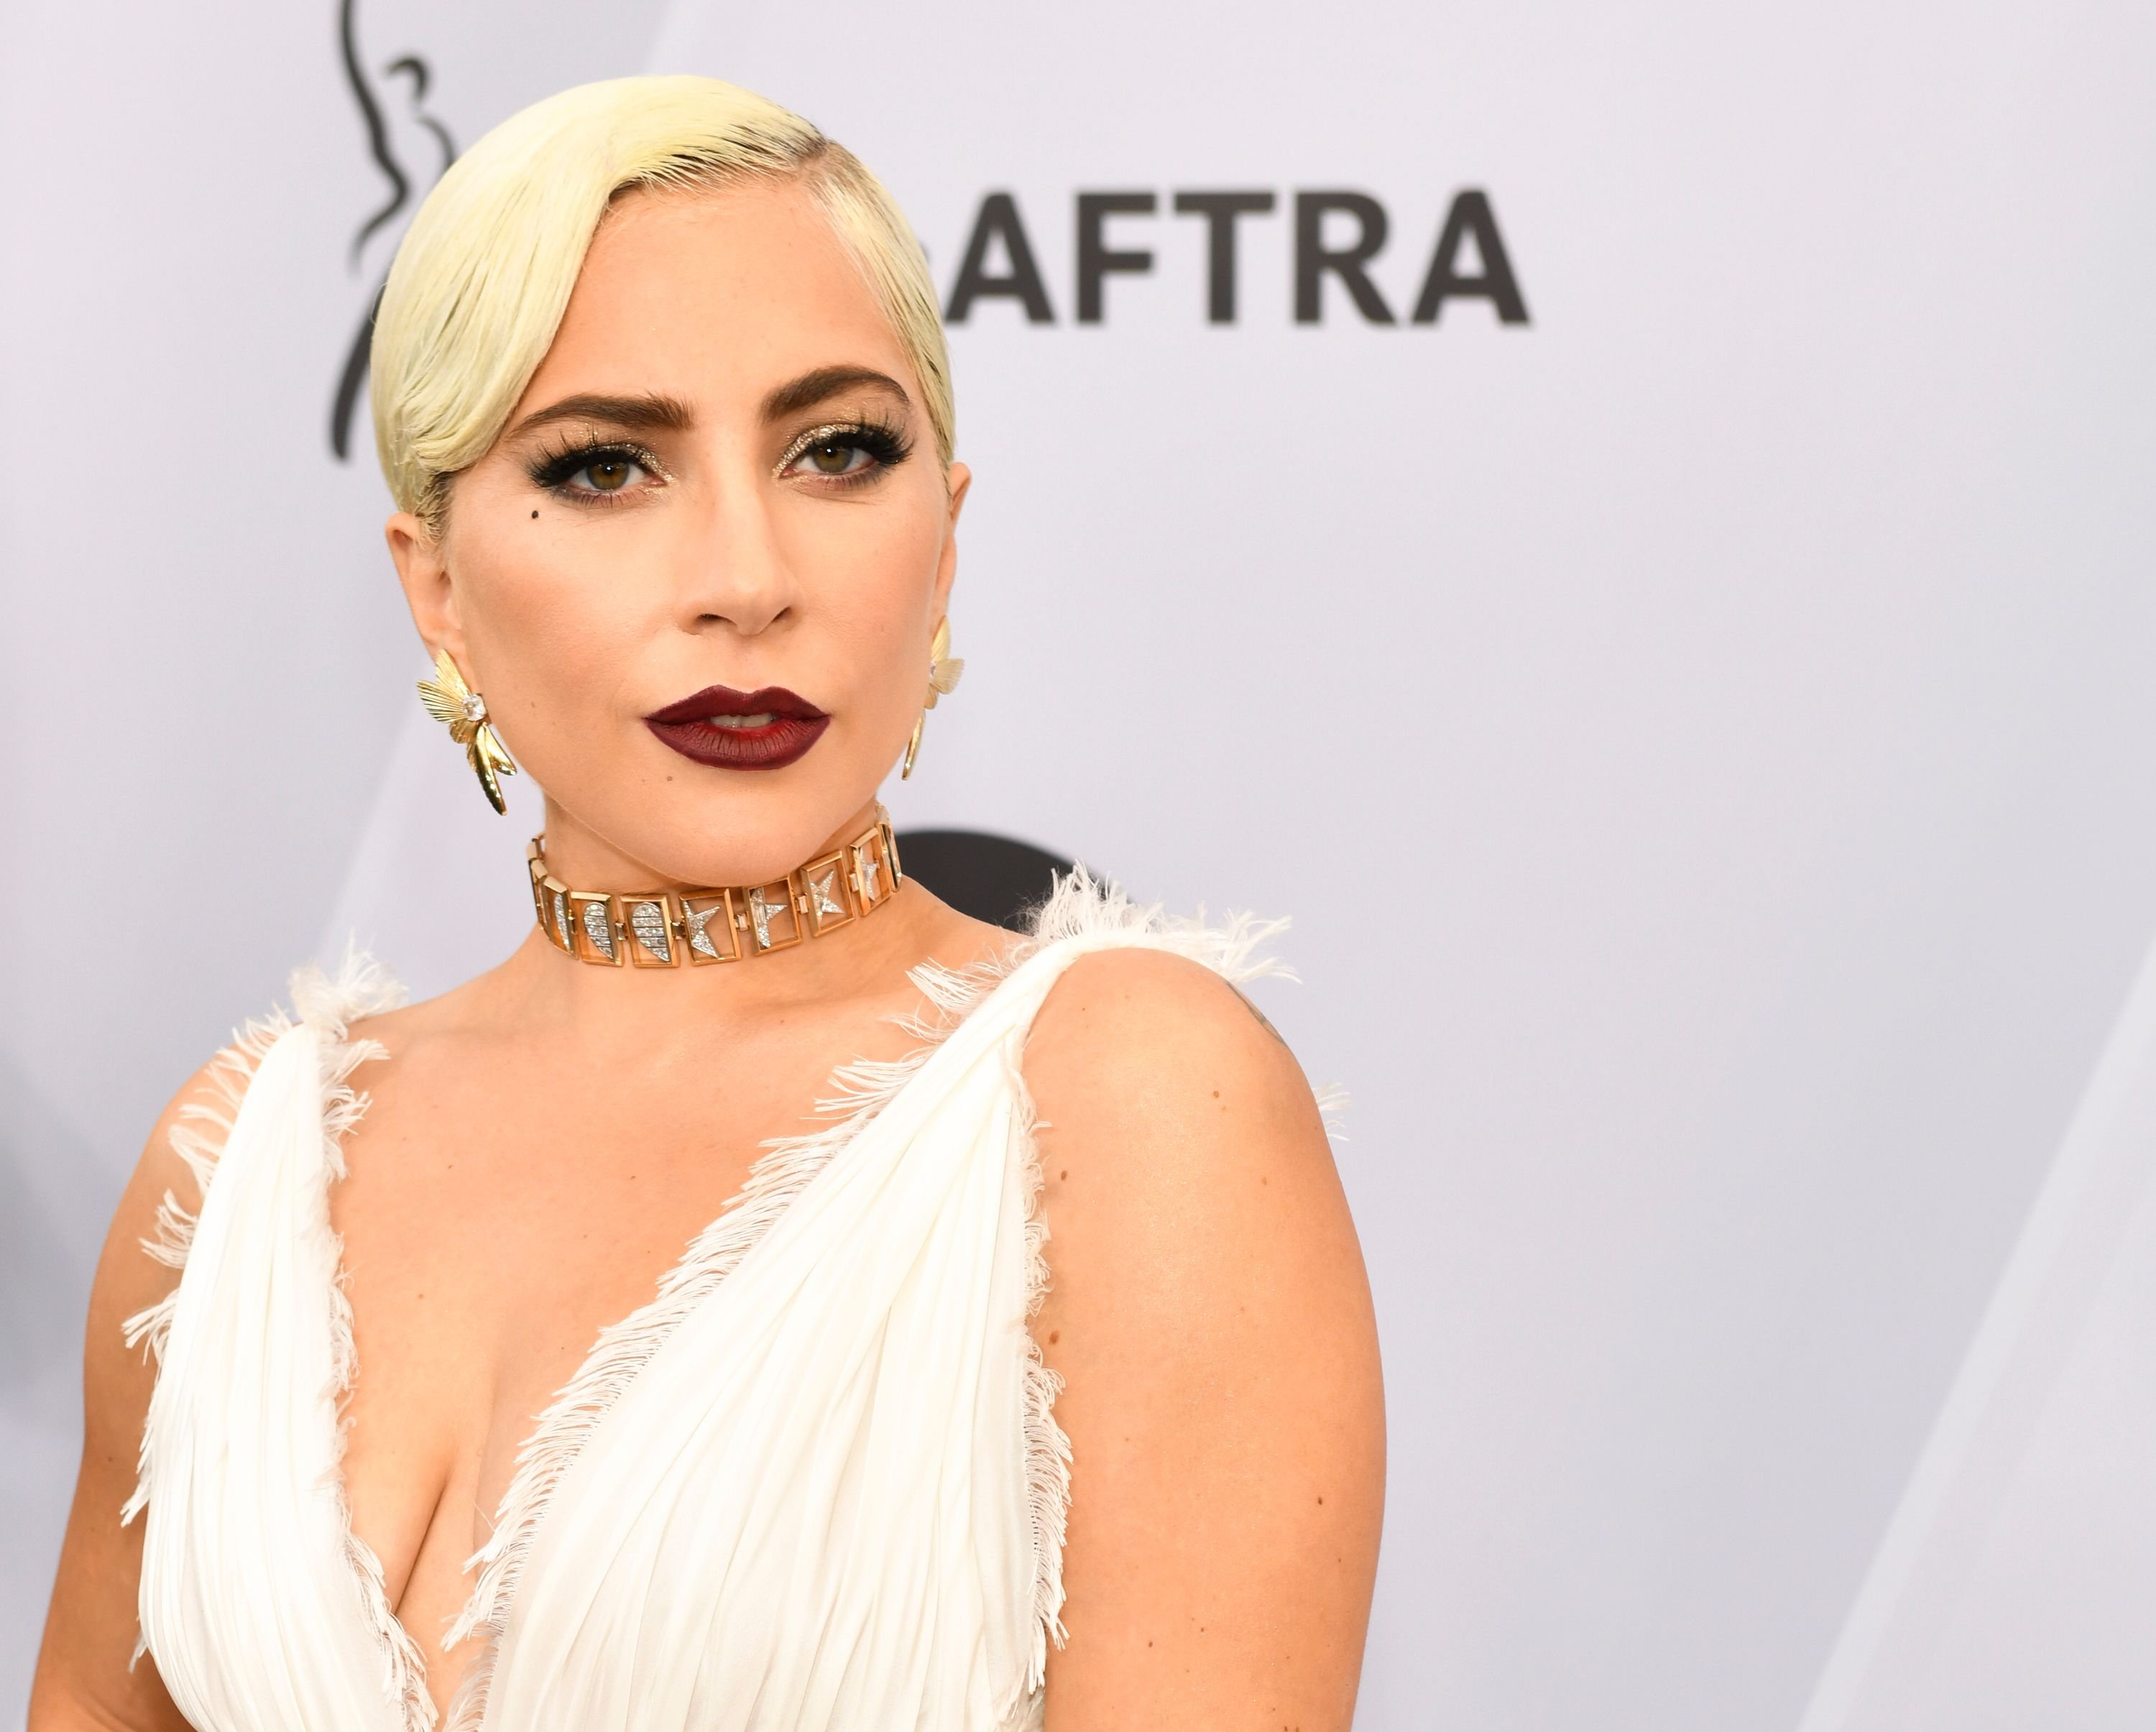 Lady Gaga at the 25th Annual Screen Actors Guild Awards at The Shrine Auditorium on January 27, 2019 | Photo: Getty Images